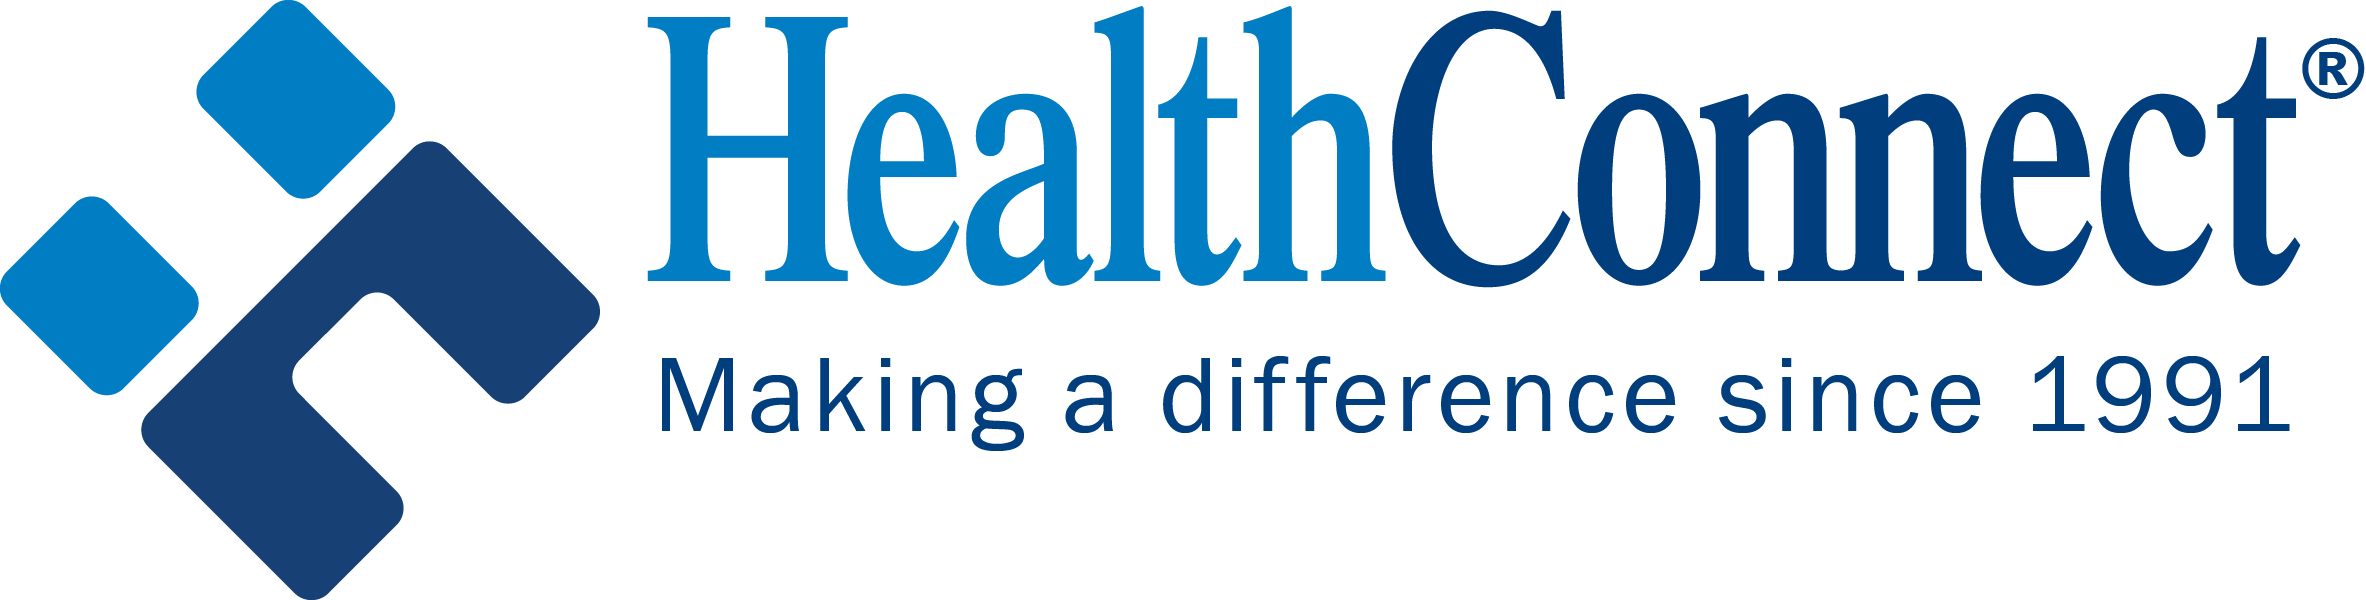 HealthConnect with Tagline (CMYK).png